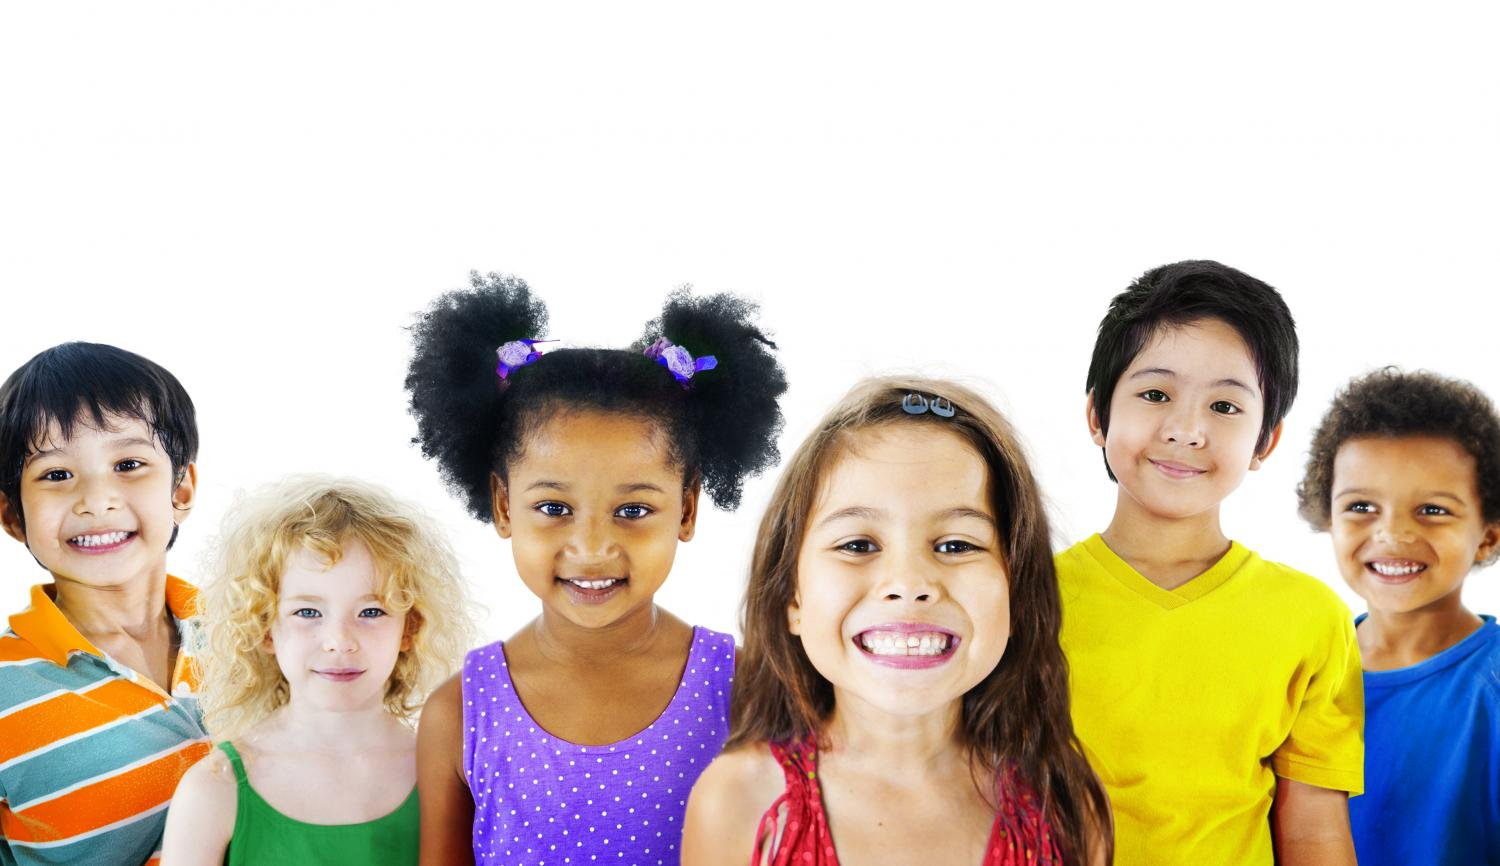 A study on the views of children on race